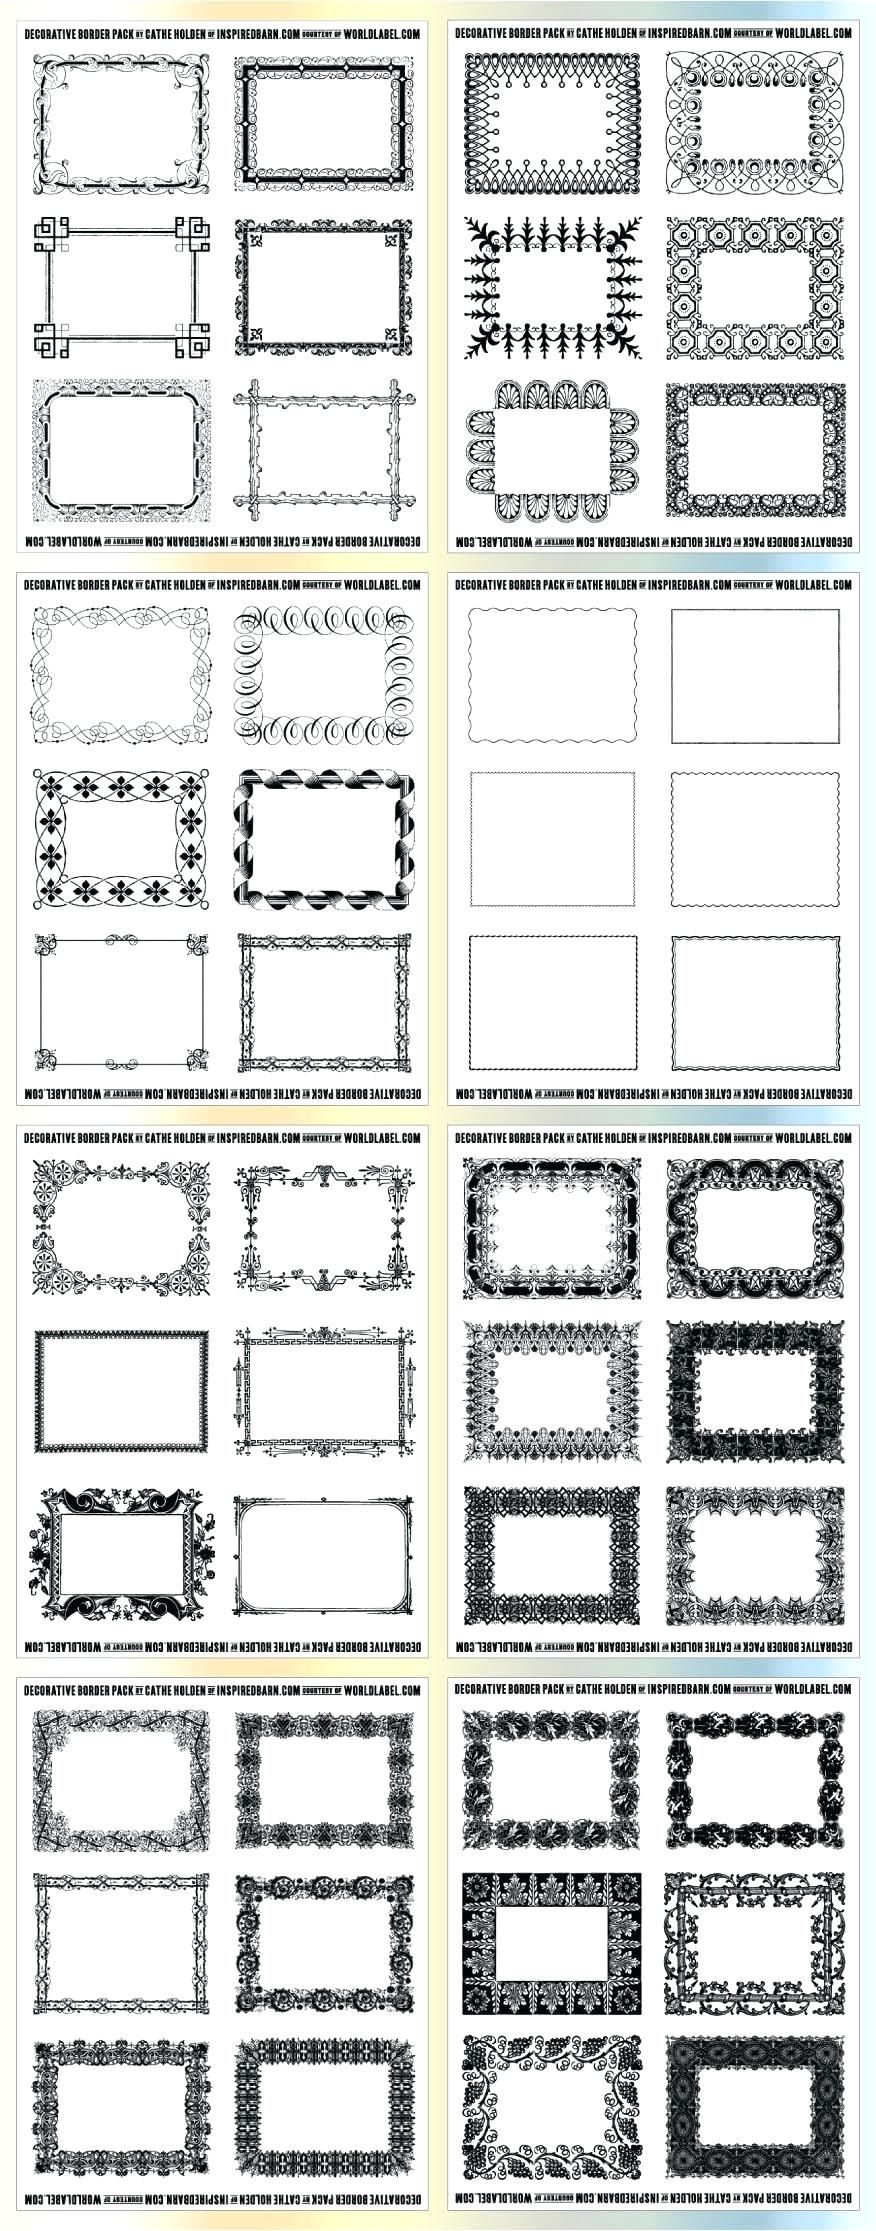 008 Wondrou Free Mail Label Template Example  Printable Addres 1 X 2 5 8 For Word DownloadFull